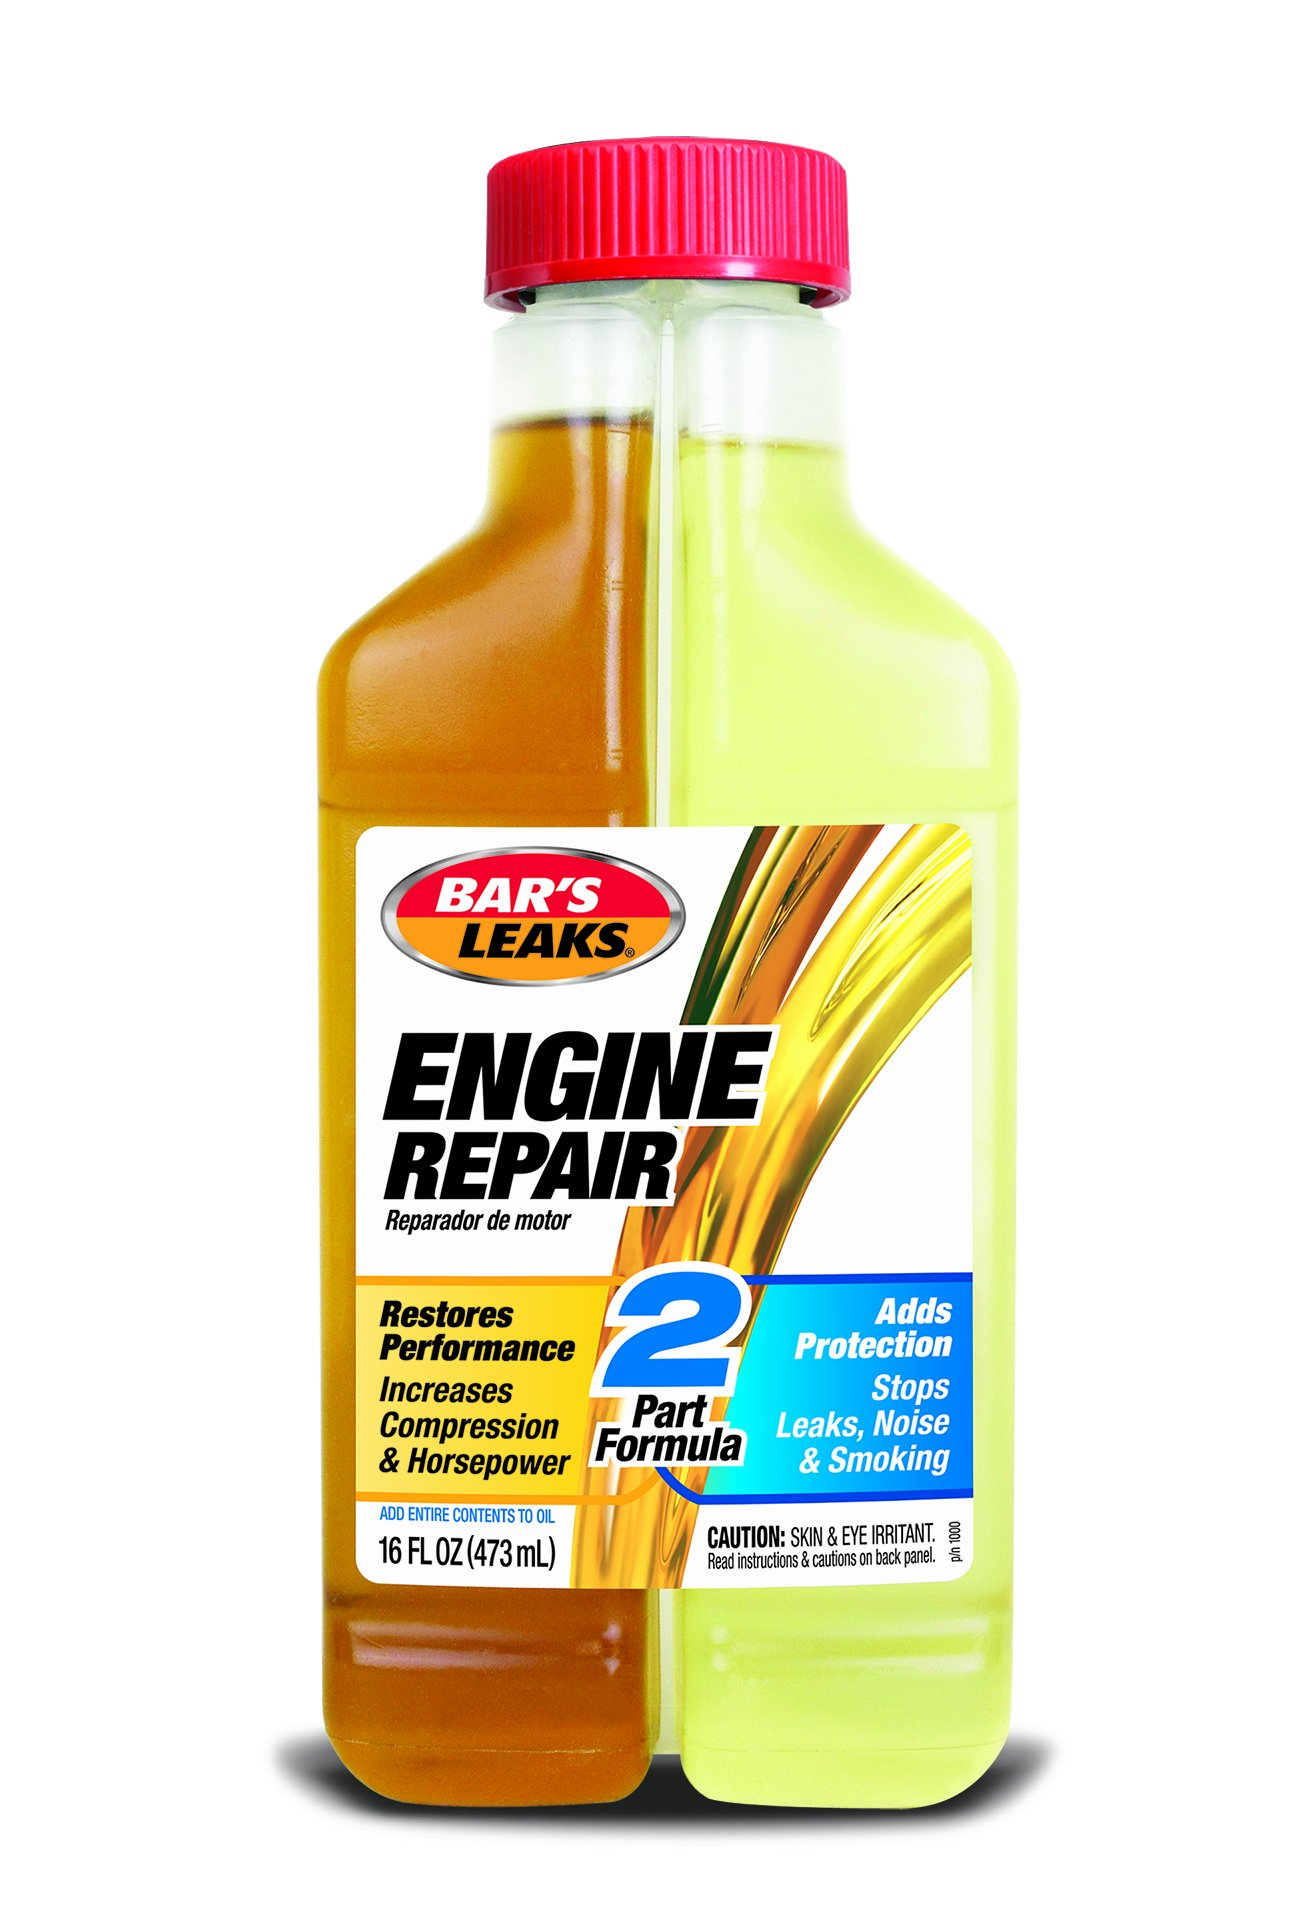 Bar's Leaks 1000-4PK Engine Repair - 16 oz., (Pack of 4)